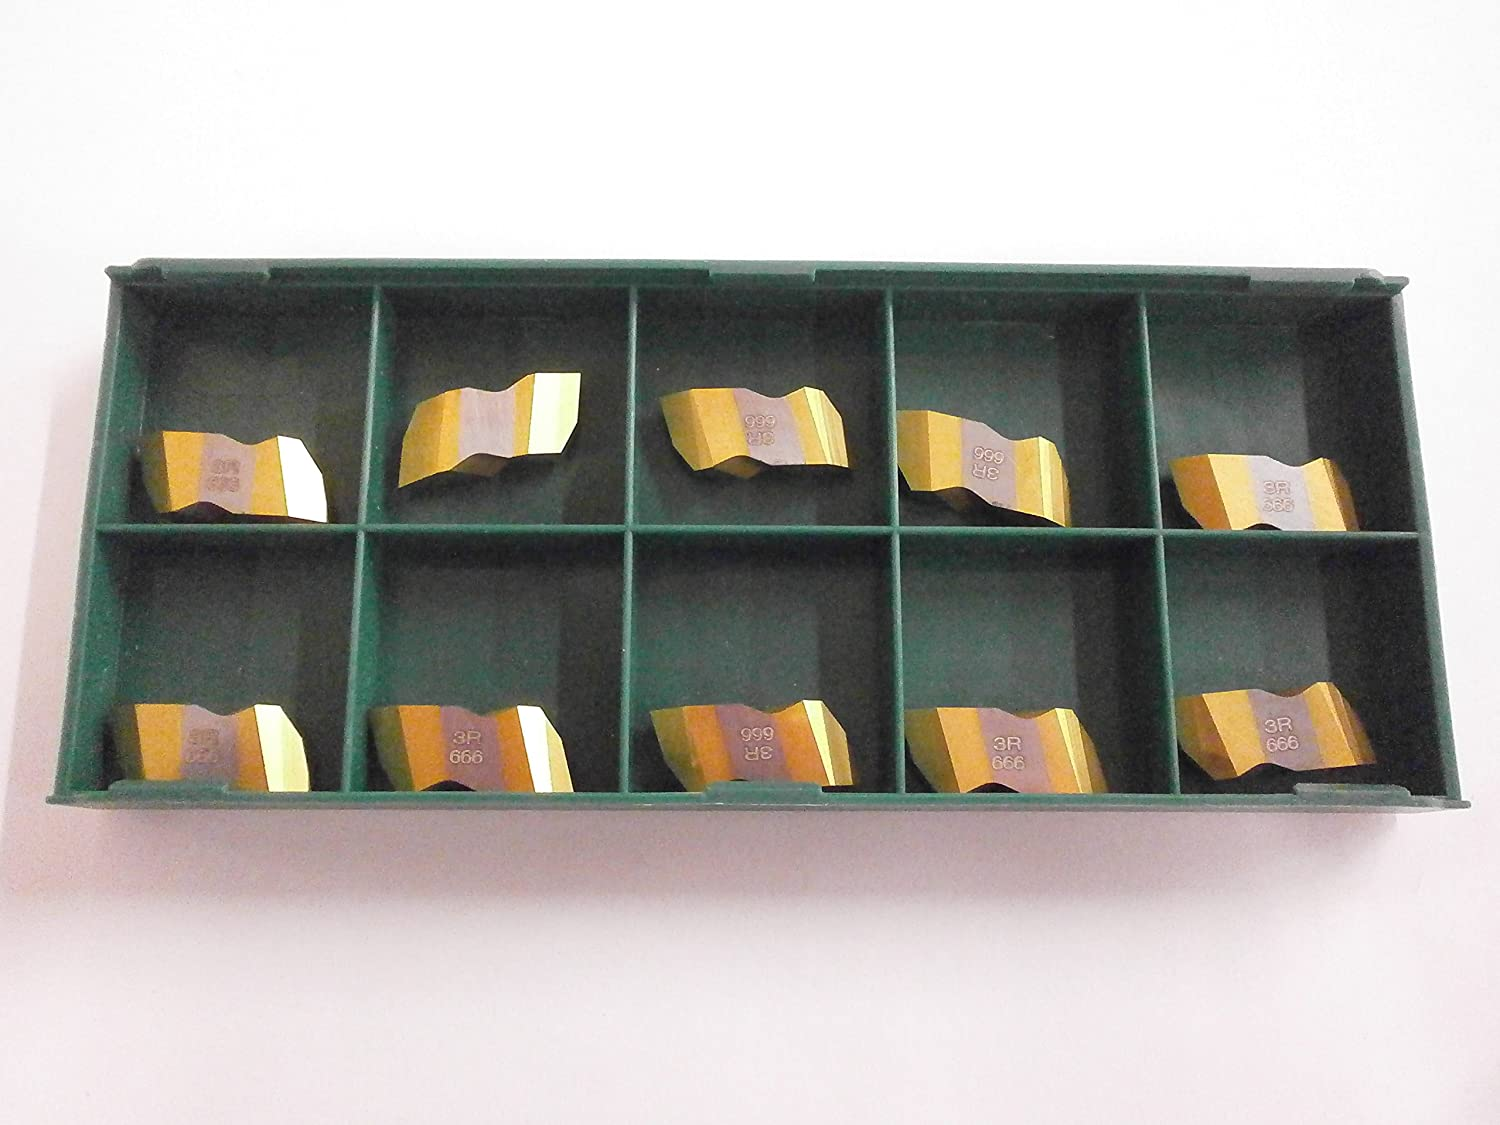 ToolFlo FLT 3L C3 Top Notch Coated Carbide 60/° V Threading Inserts NT 3L Made in USA 10pc